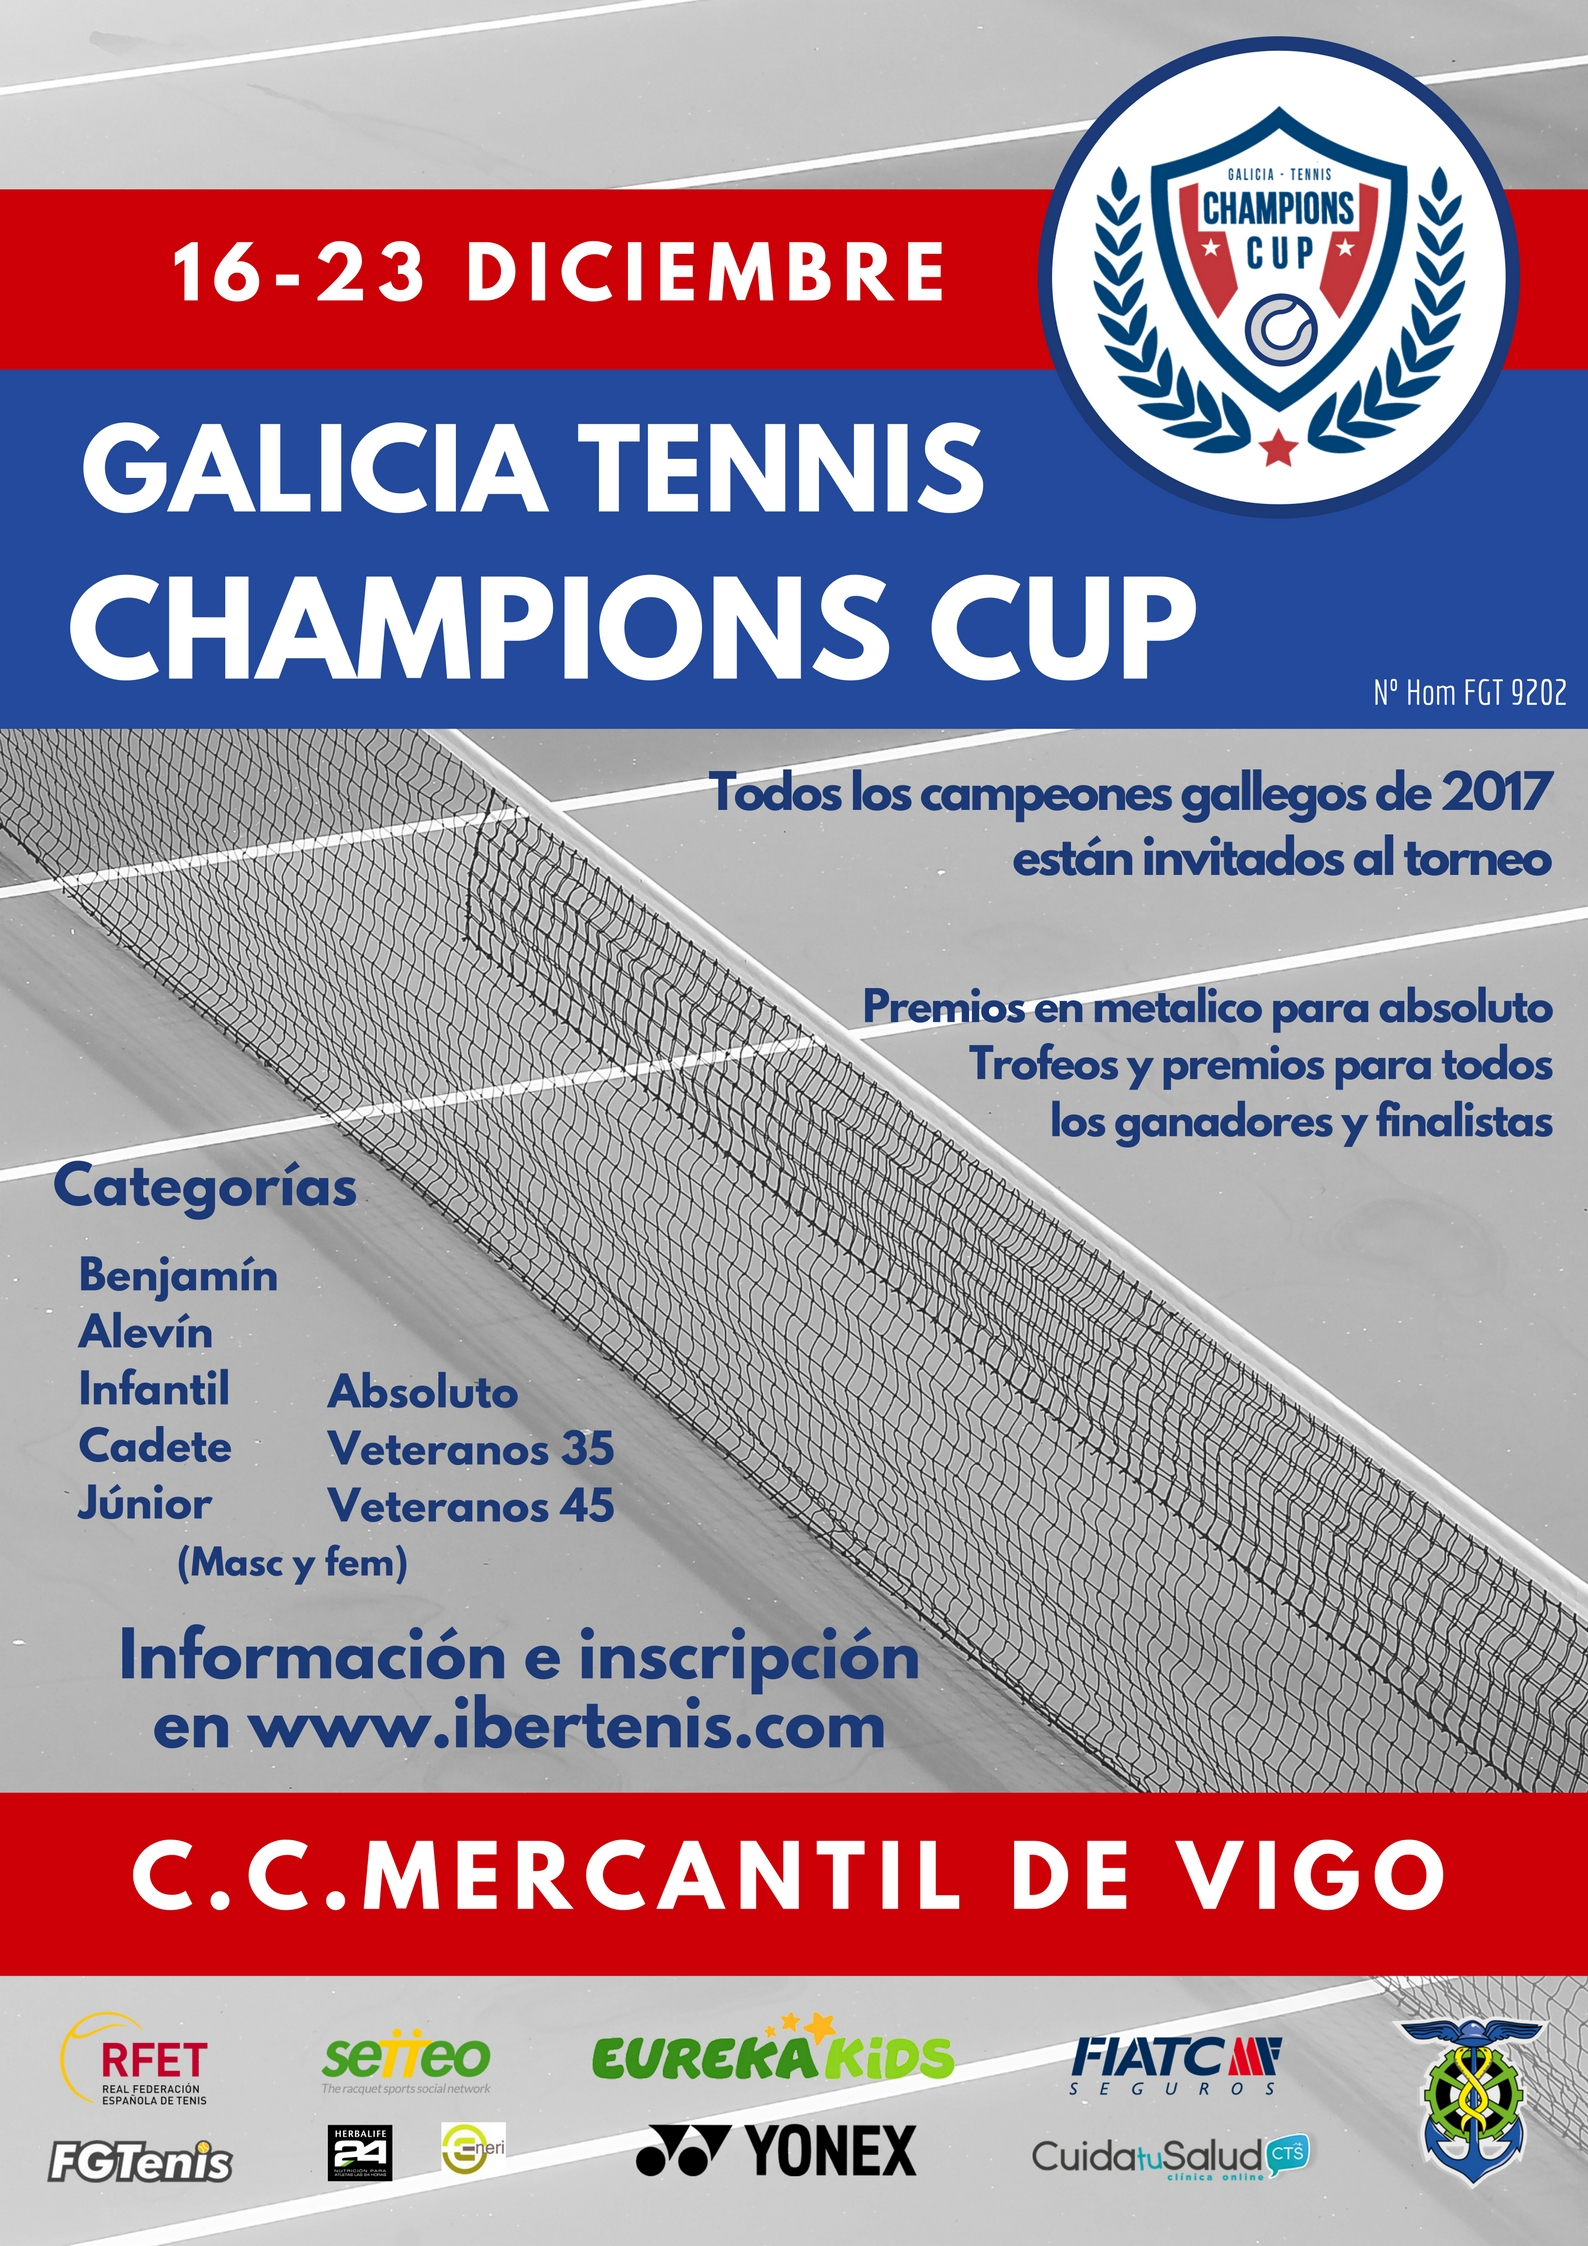 GALICIA TENNIS CHAMPIONS CUP